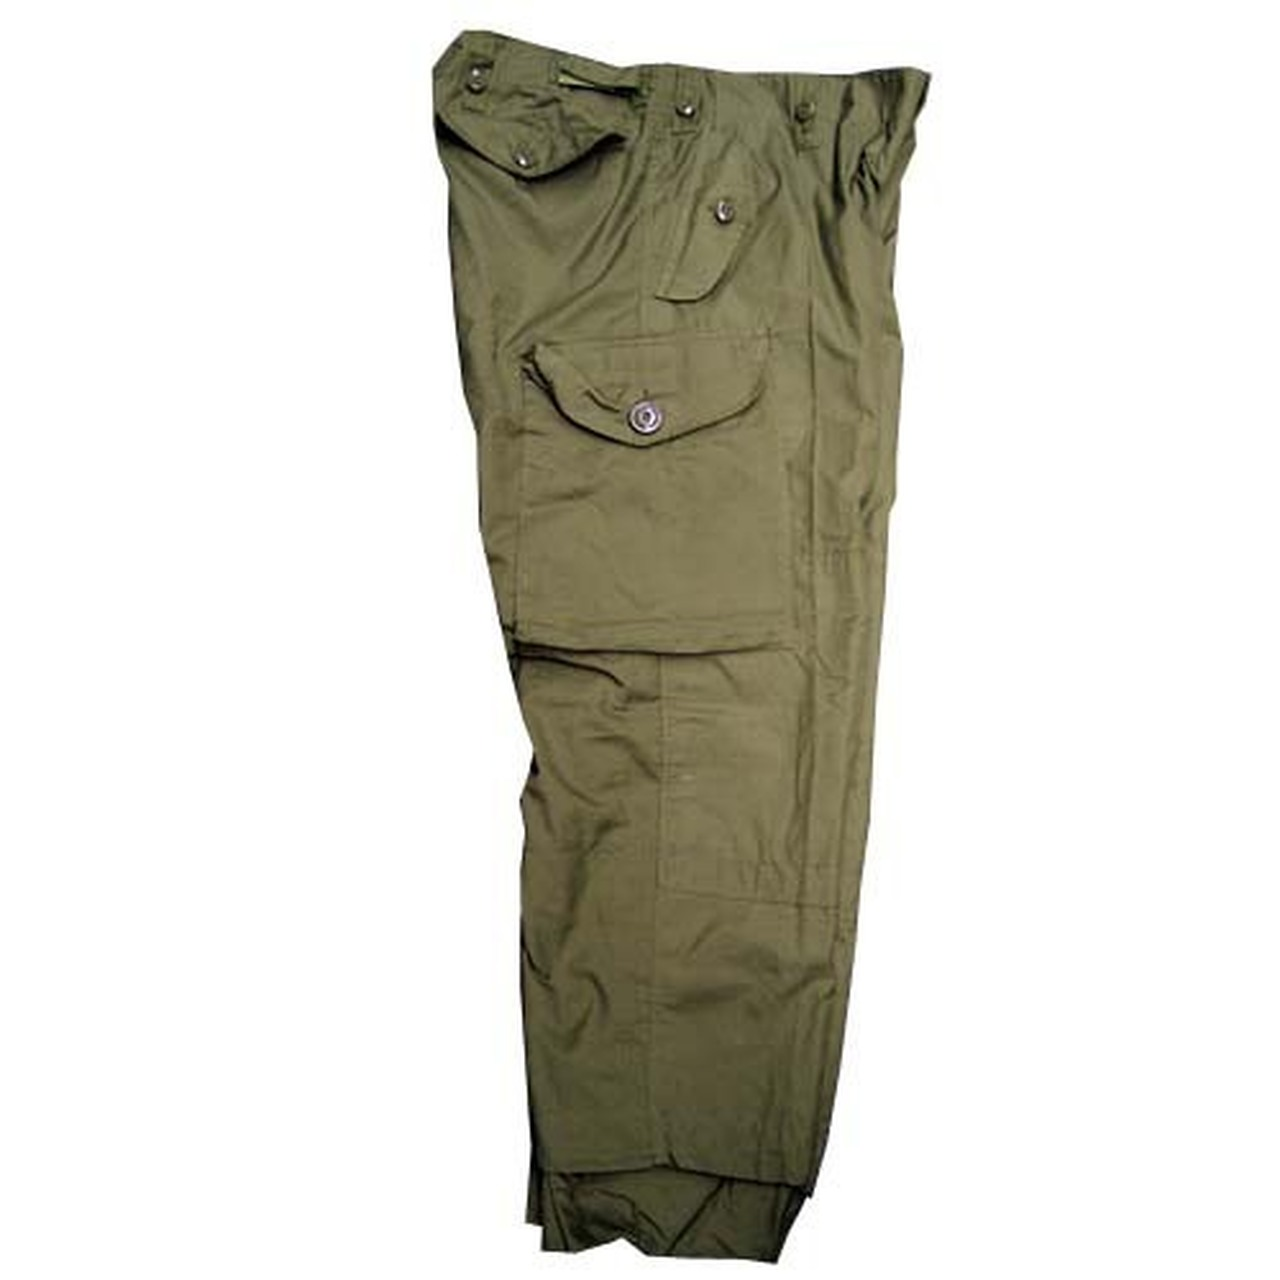 6d6c0fe49a782 Buy Military Surplus Clothing Online Canada | HeroOutdoors.com